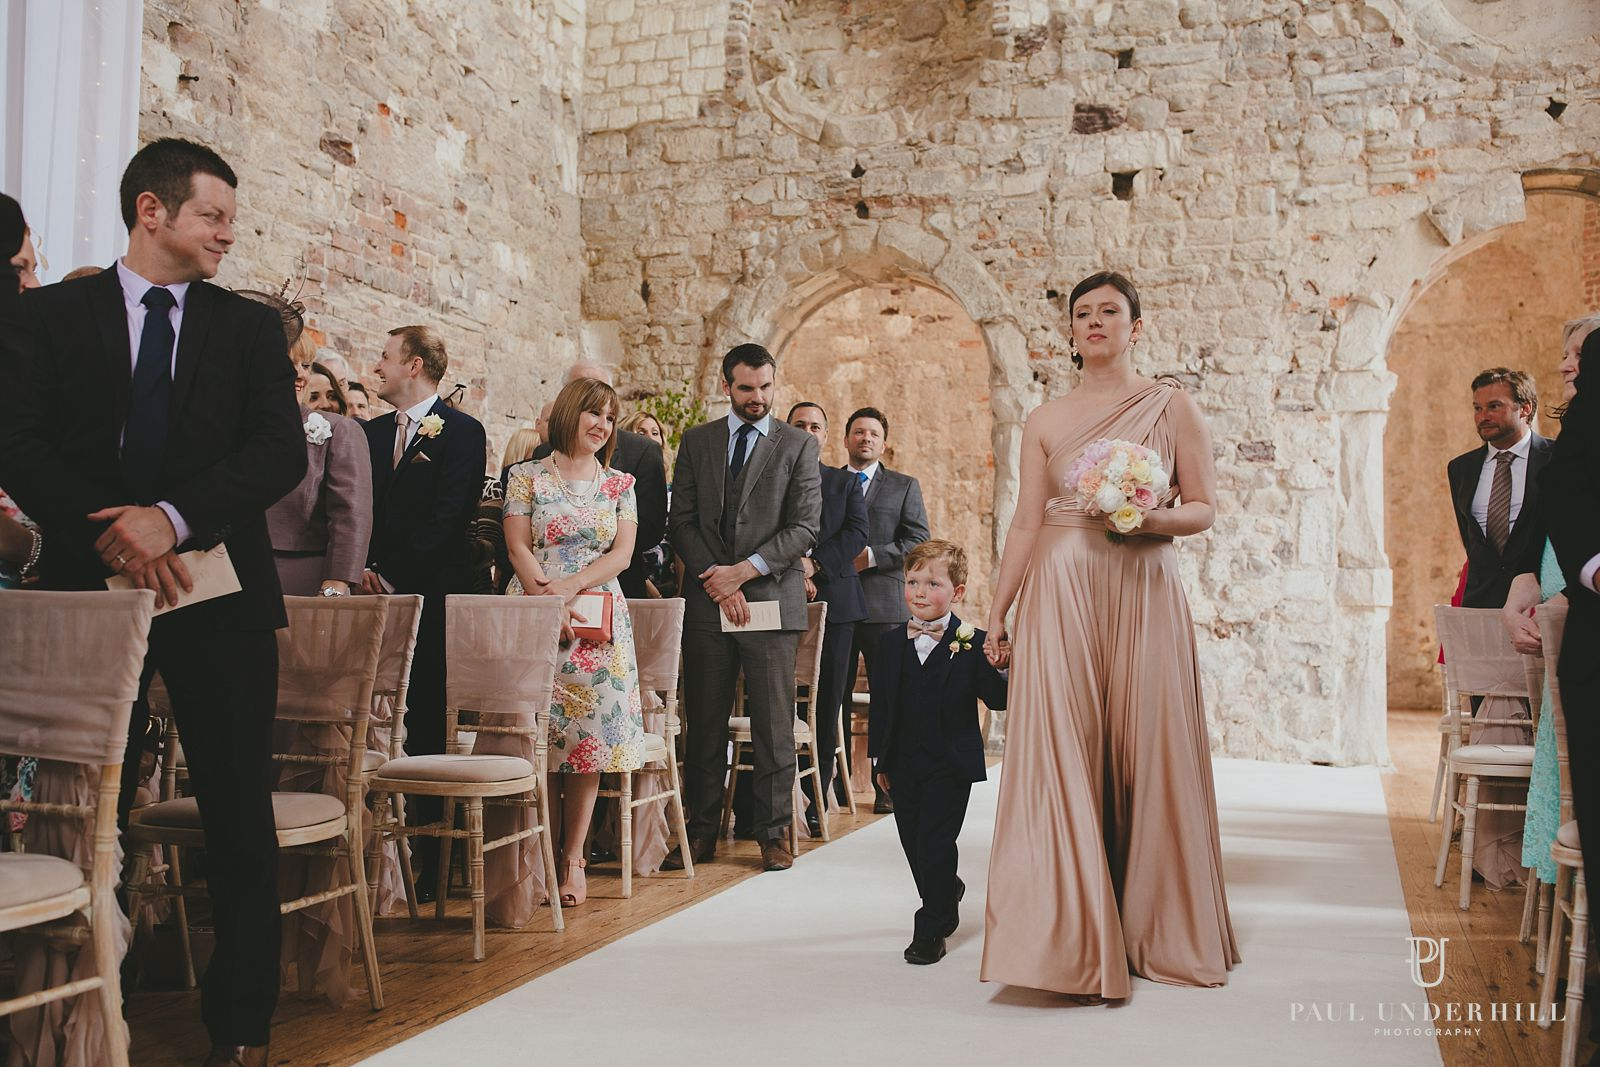 Lulworth Castle marriage ceremony